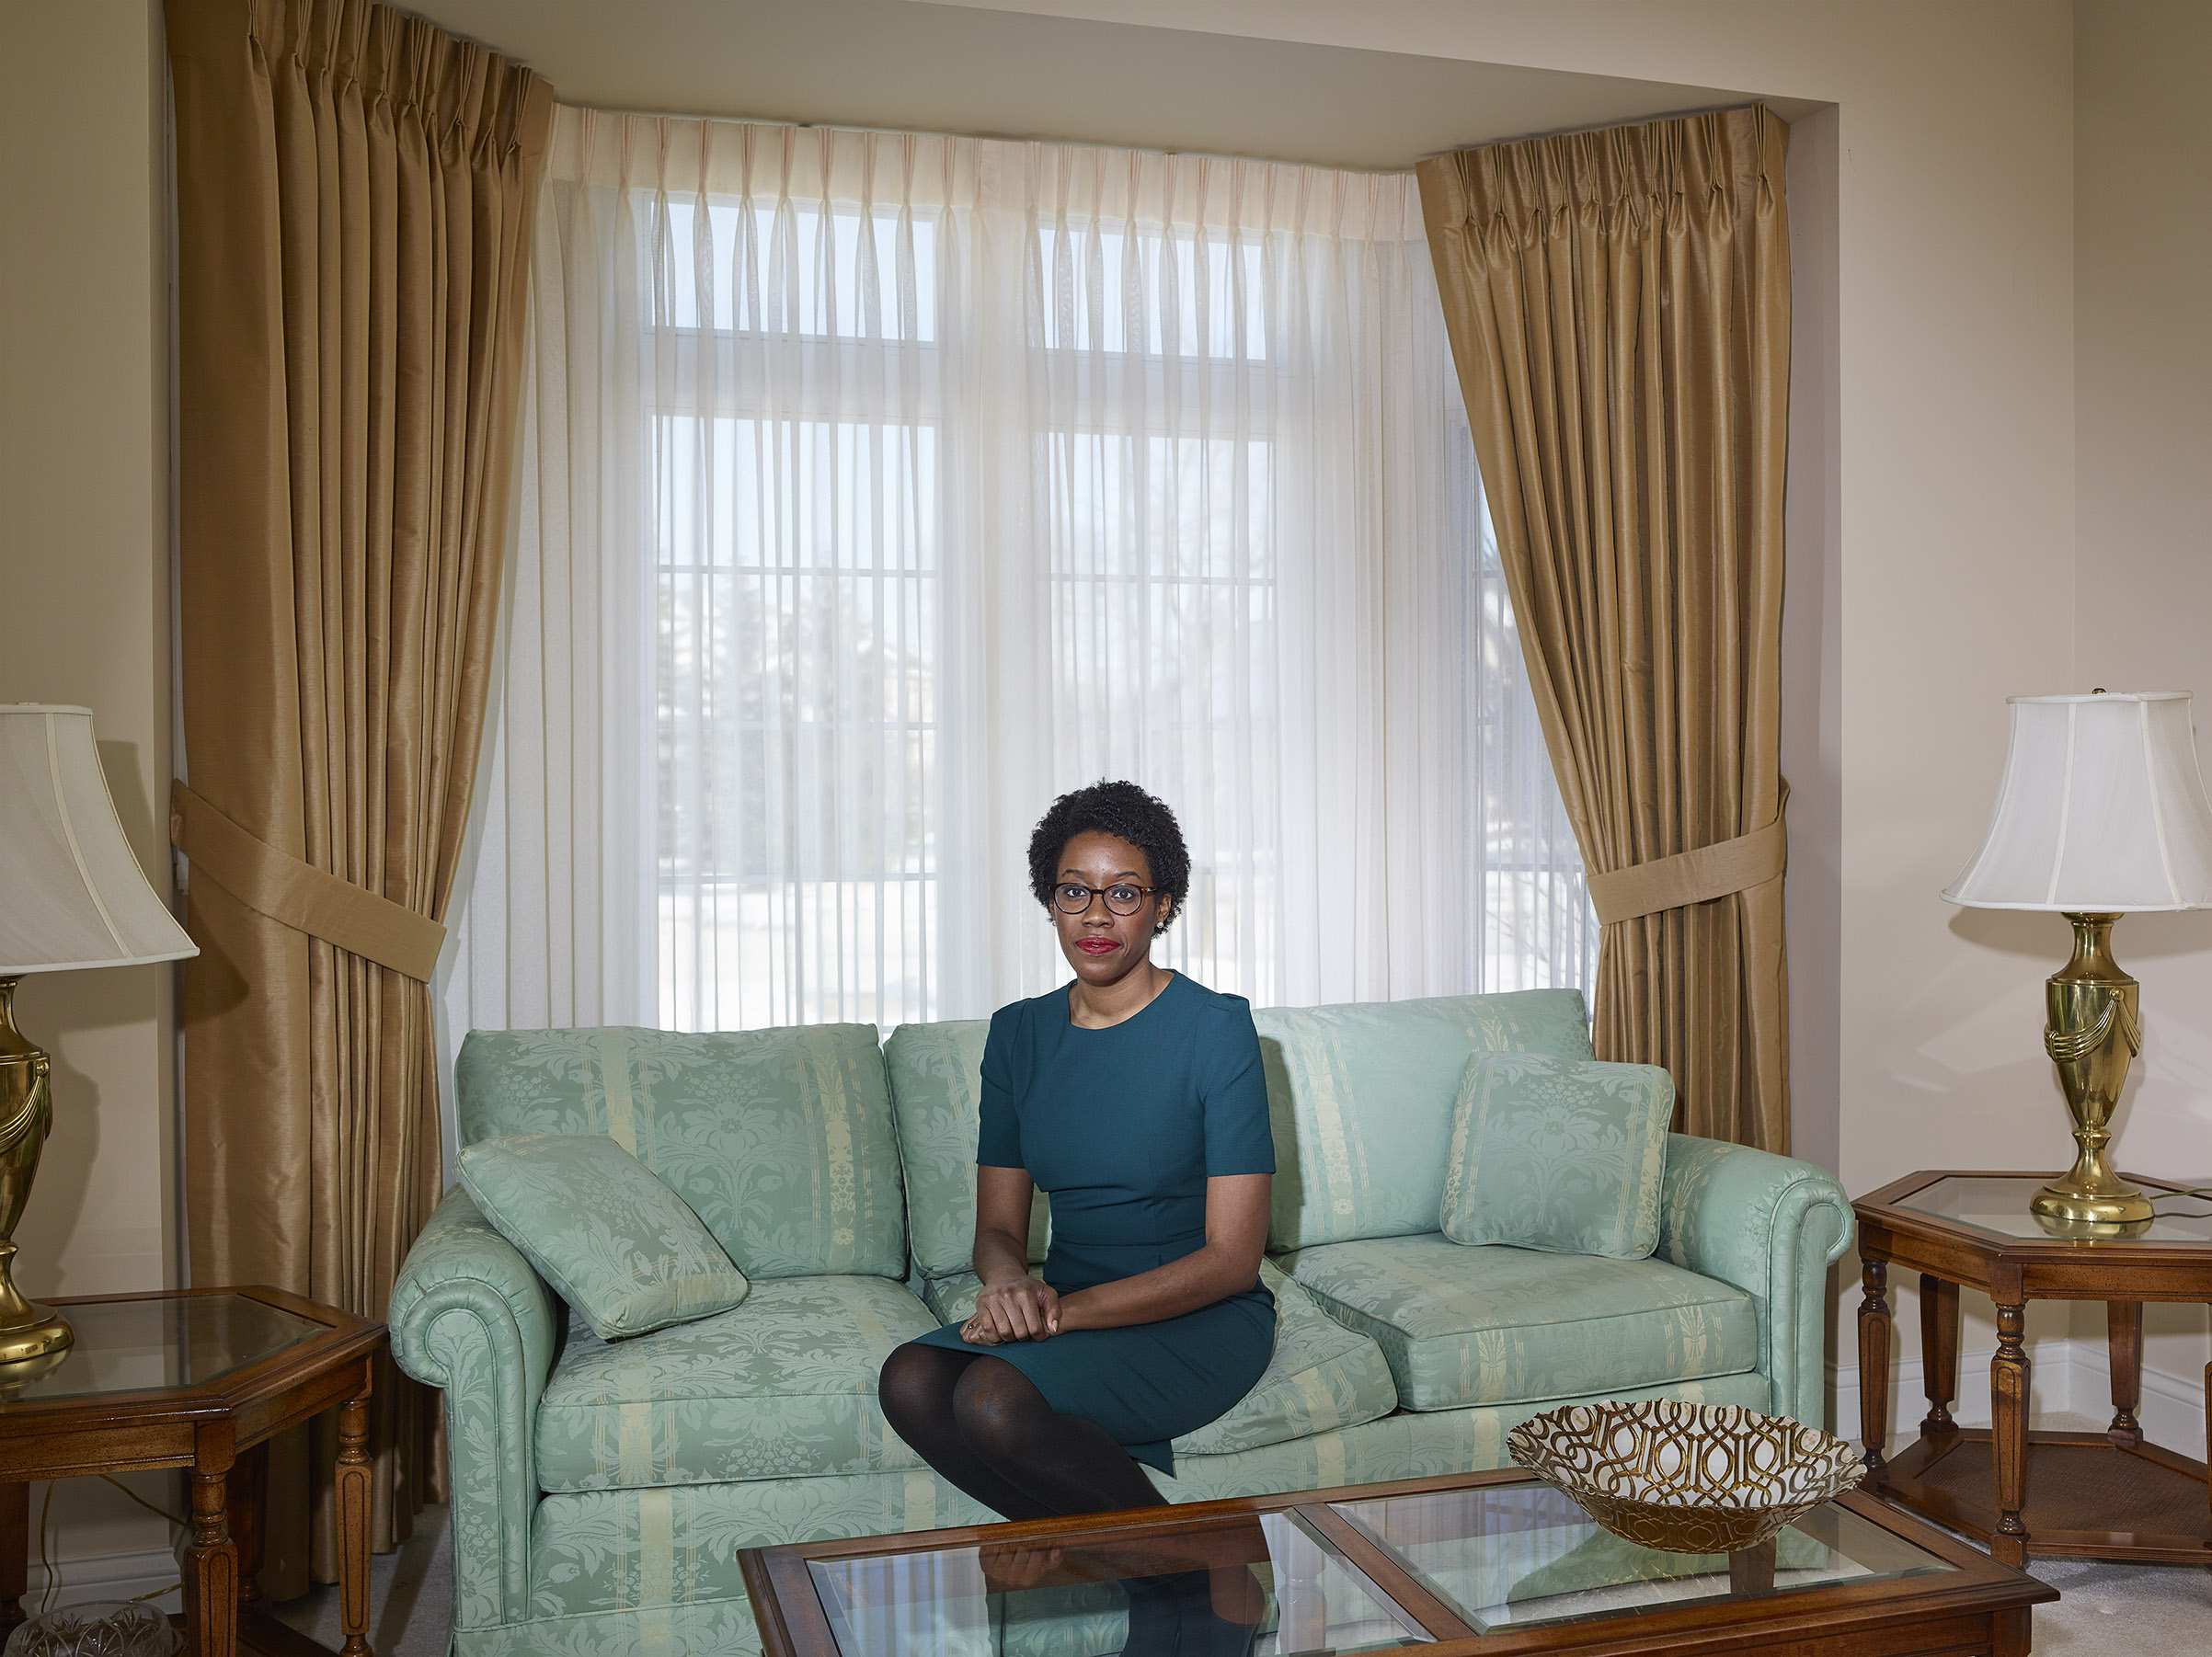 Lauren Underwood, a registered nurse with a heart condition, decided to run for the House of Representatives in Illinois after her Congressman broke a pledge on the health care bill